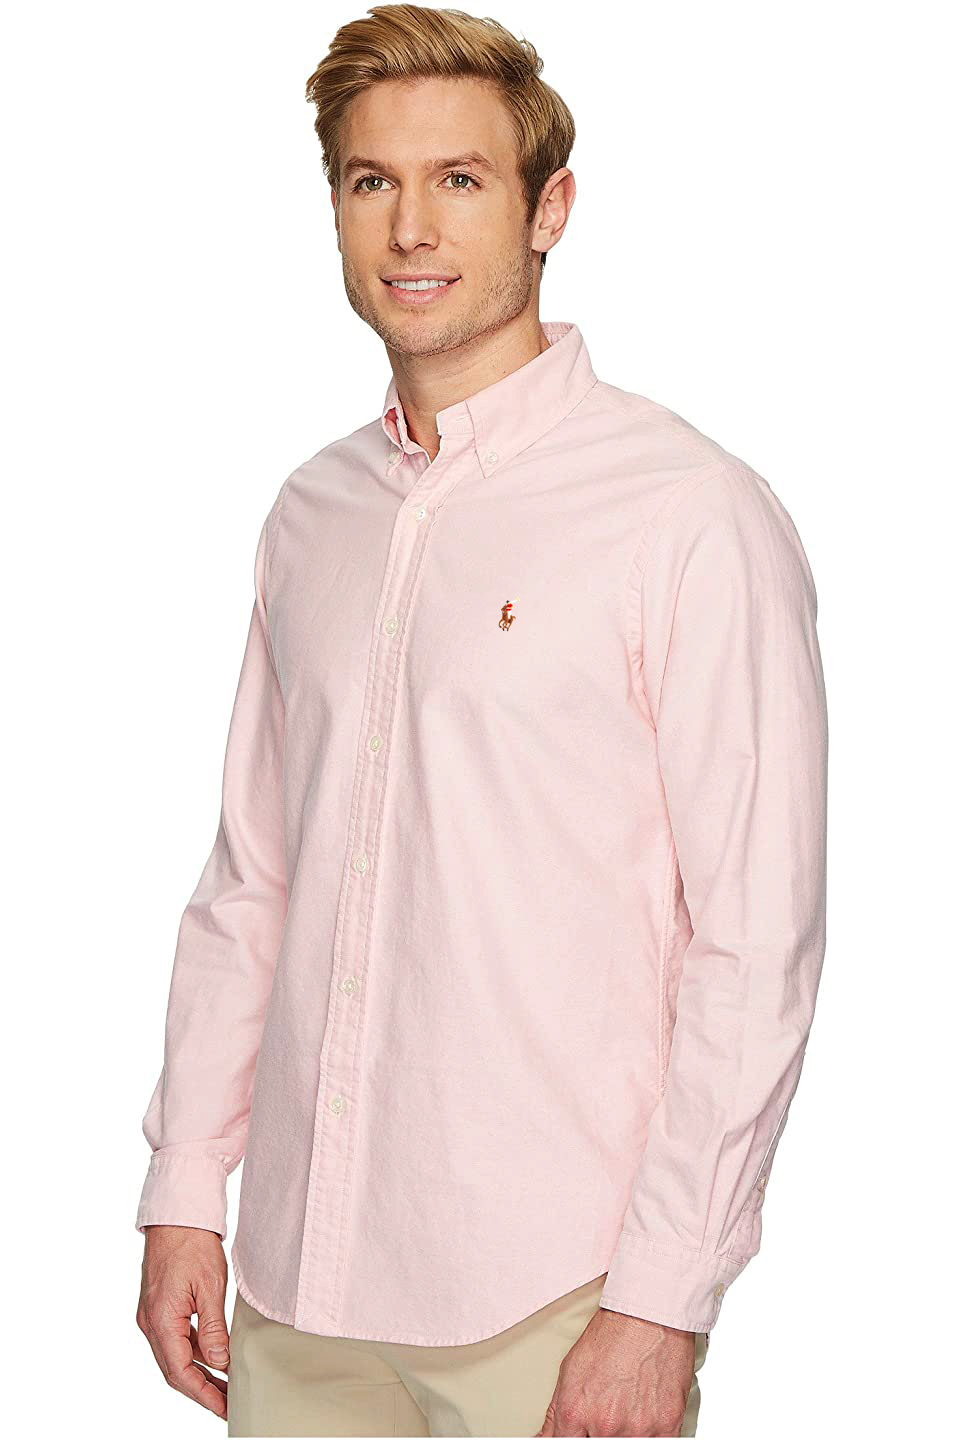 Camisa Ralph Lauren Masculina Custom Fit Icon Color Cotton Oxford Rosa